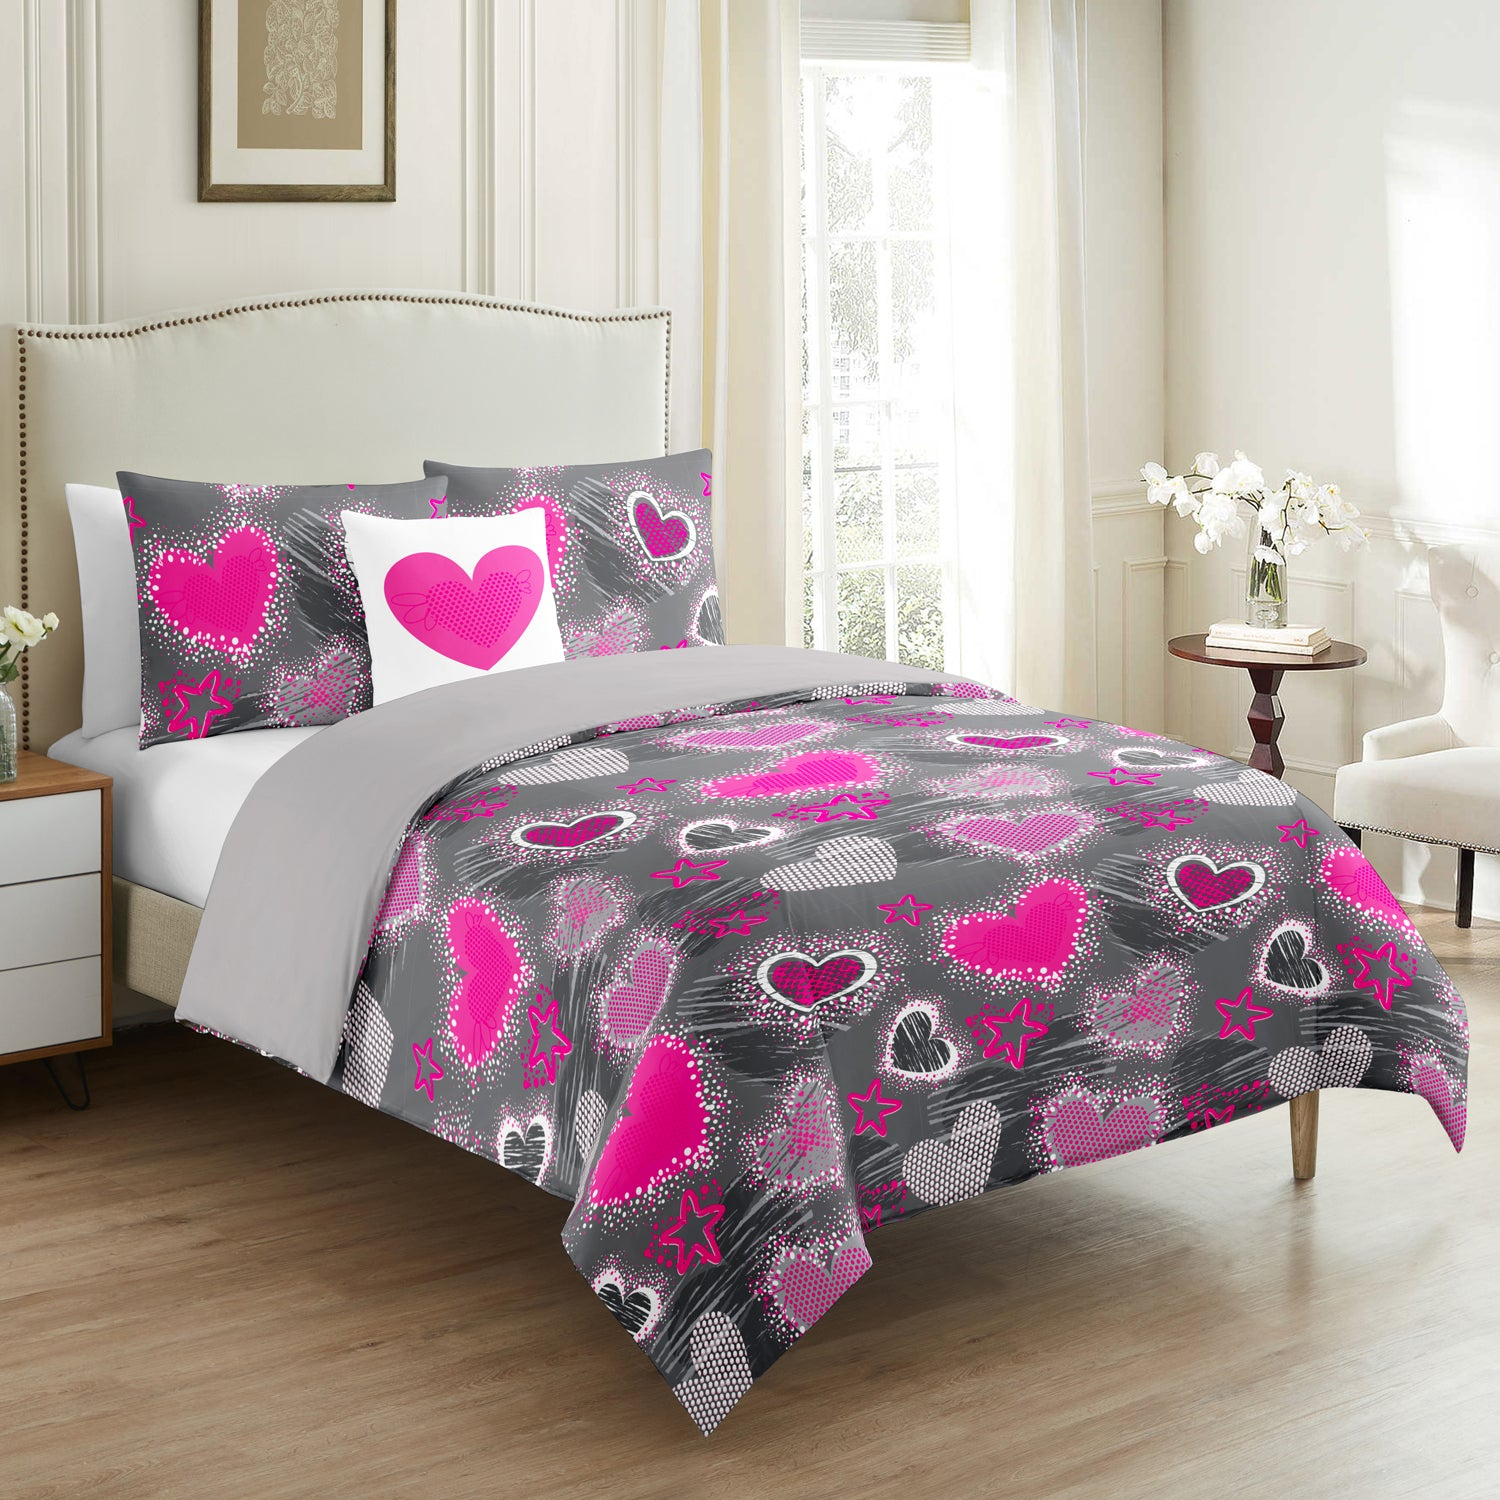 Pink Love Beats Kids Duvet Cover Set 4 Pieces - Merrylife